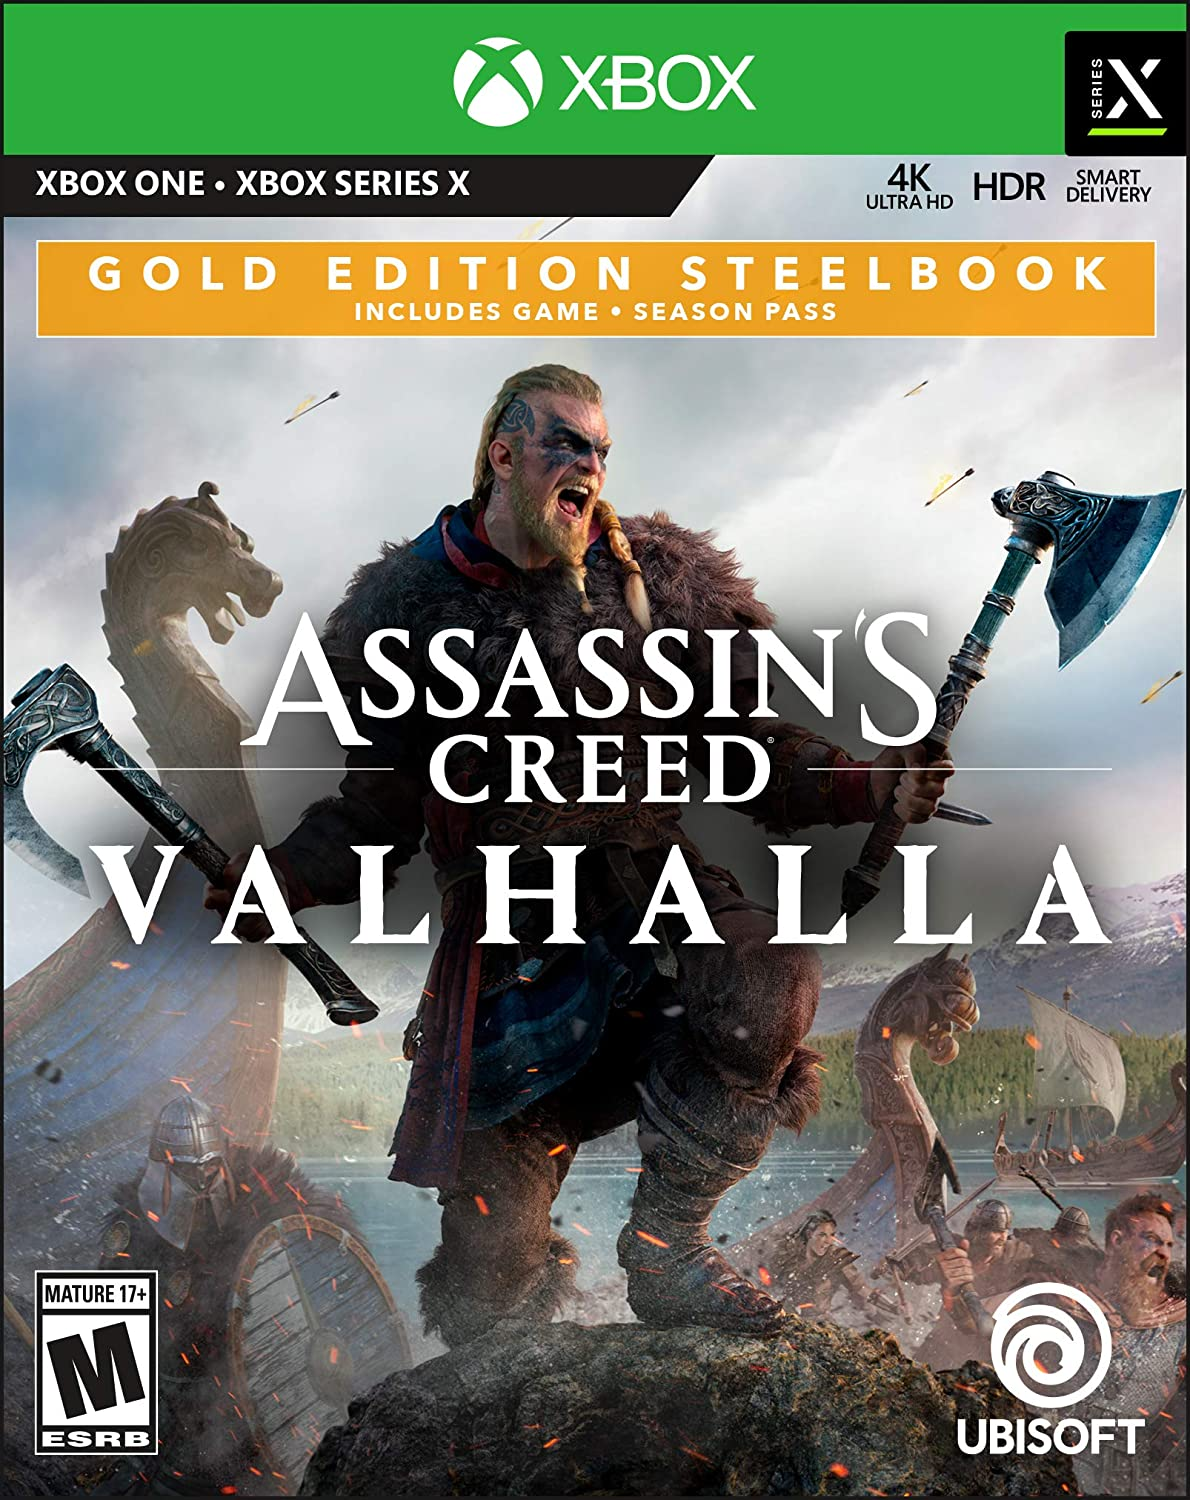 Assassin's Creed Valhalla Gold Steelbook Edition - Xbox One - Rite Gadgets